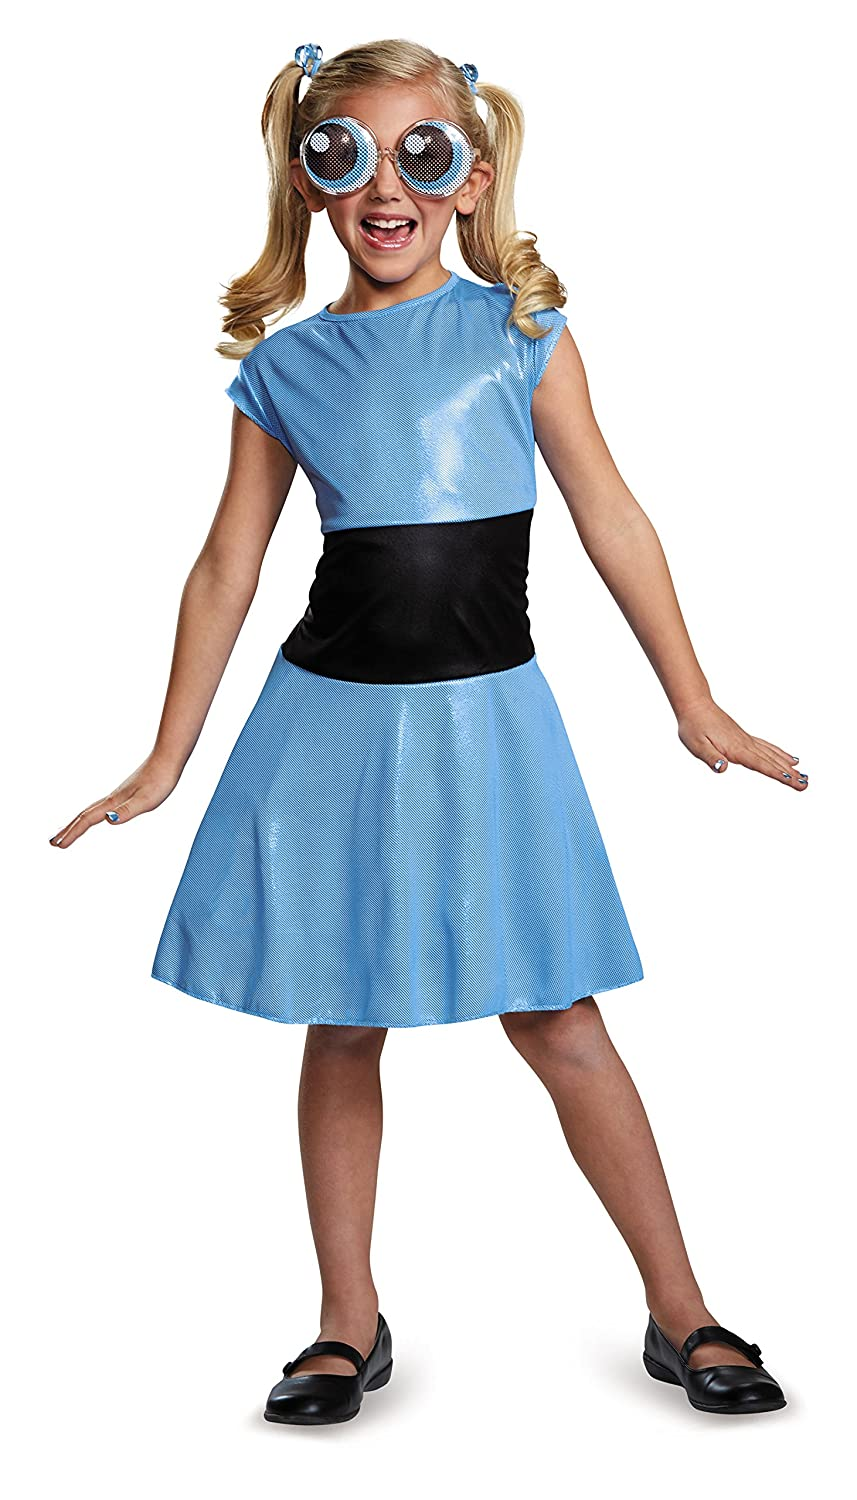 Disguise Bubbles Classic Powerpuff Girls Cartoon Network Costume, Large/10-12 by Disguise